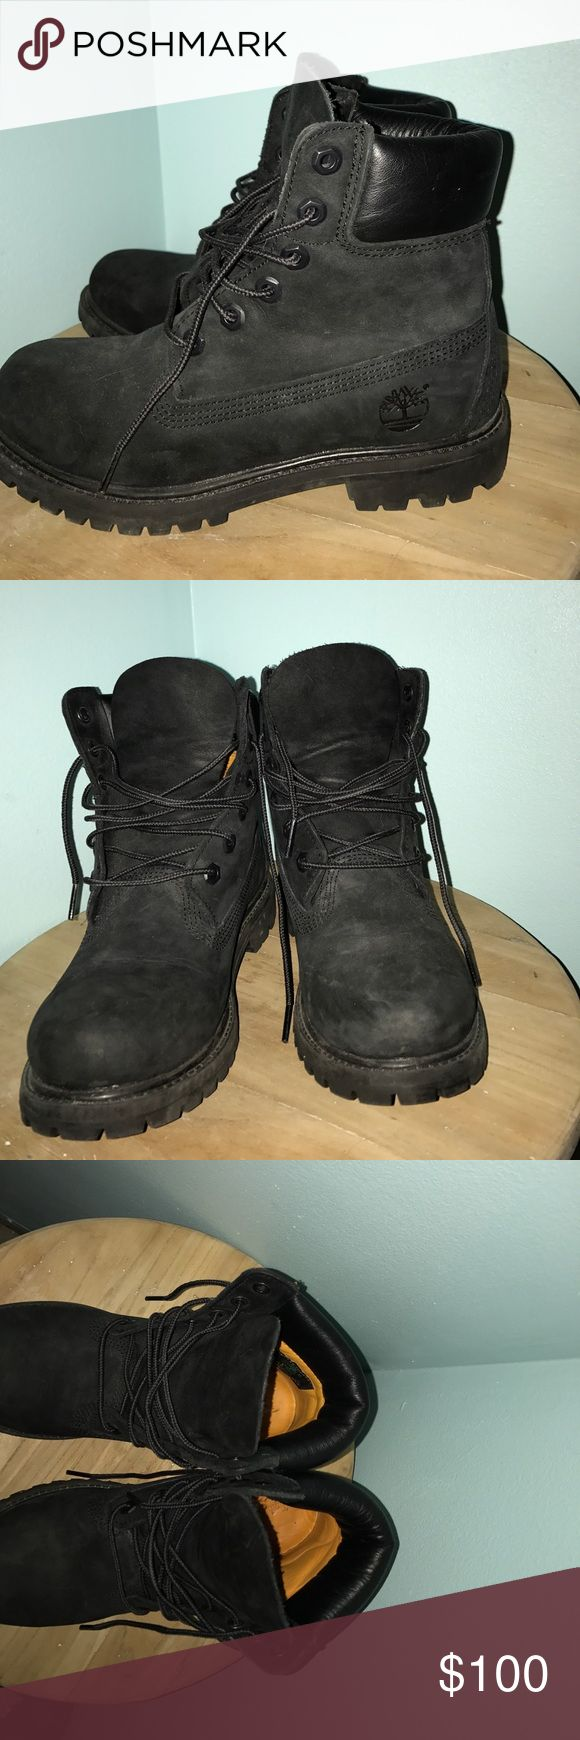 Timberland black Women size 6 Worn maybe once or twice. Did not fit my feet. They have a waterproof cover over them. Super cute! Price can be negotiated :) Timberland Shoes Combat & Moto Boots